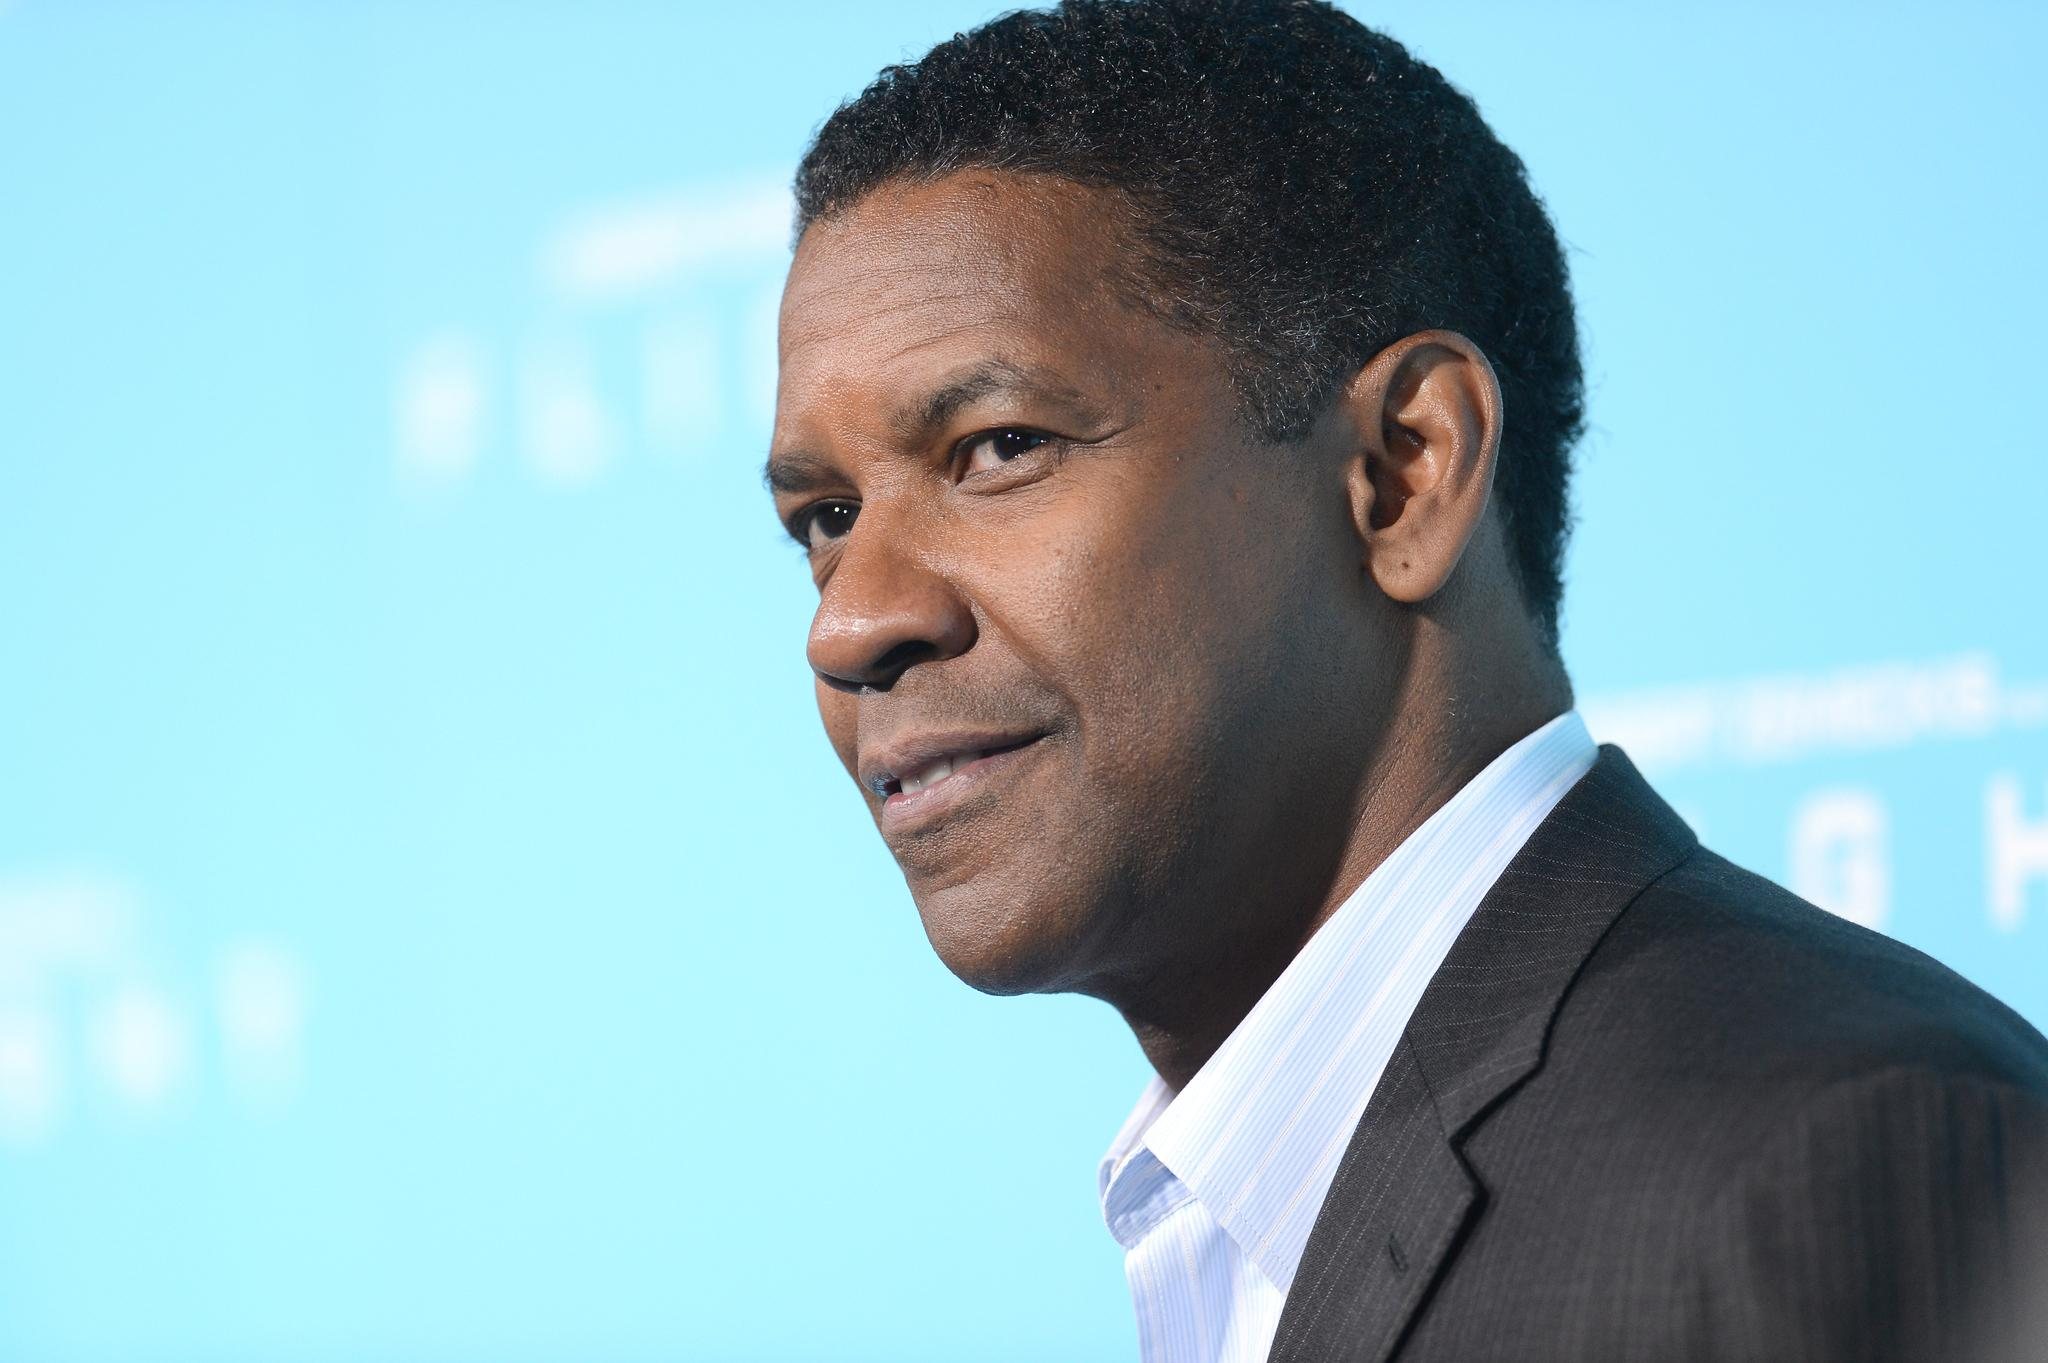 denzel-washington-in-flight-large-picture